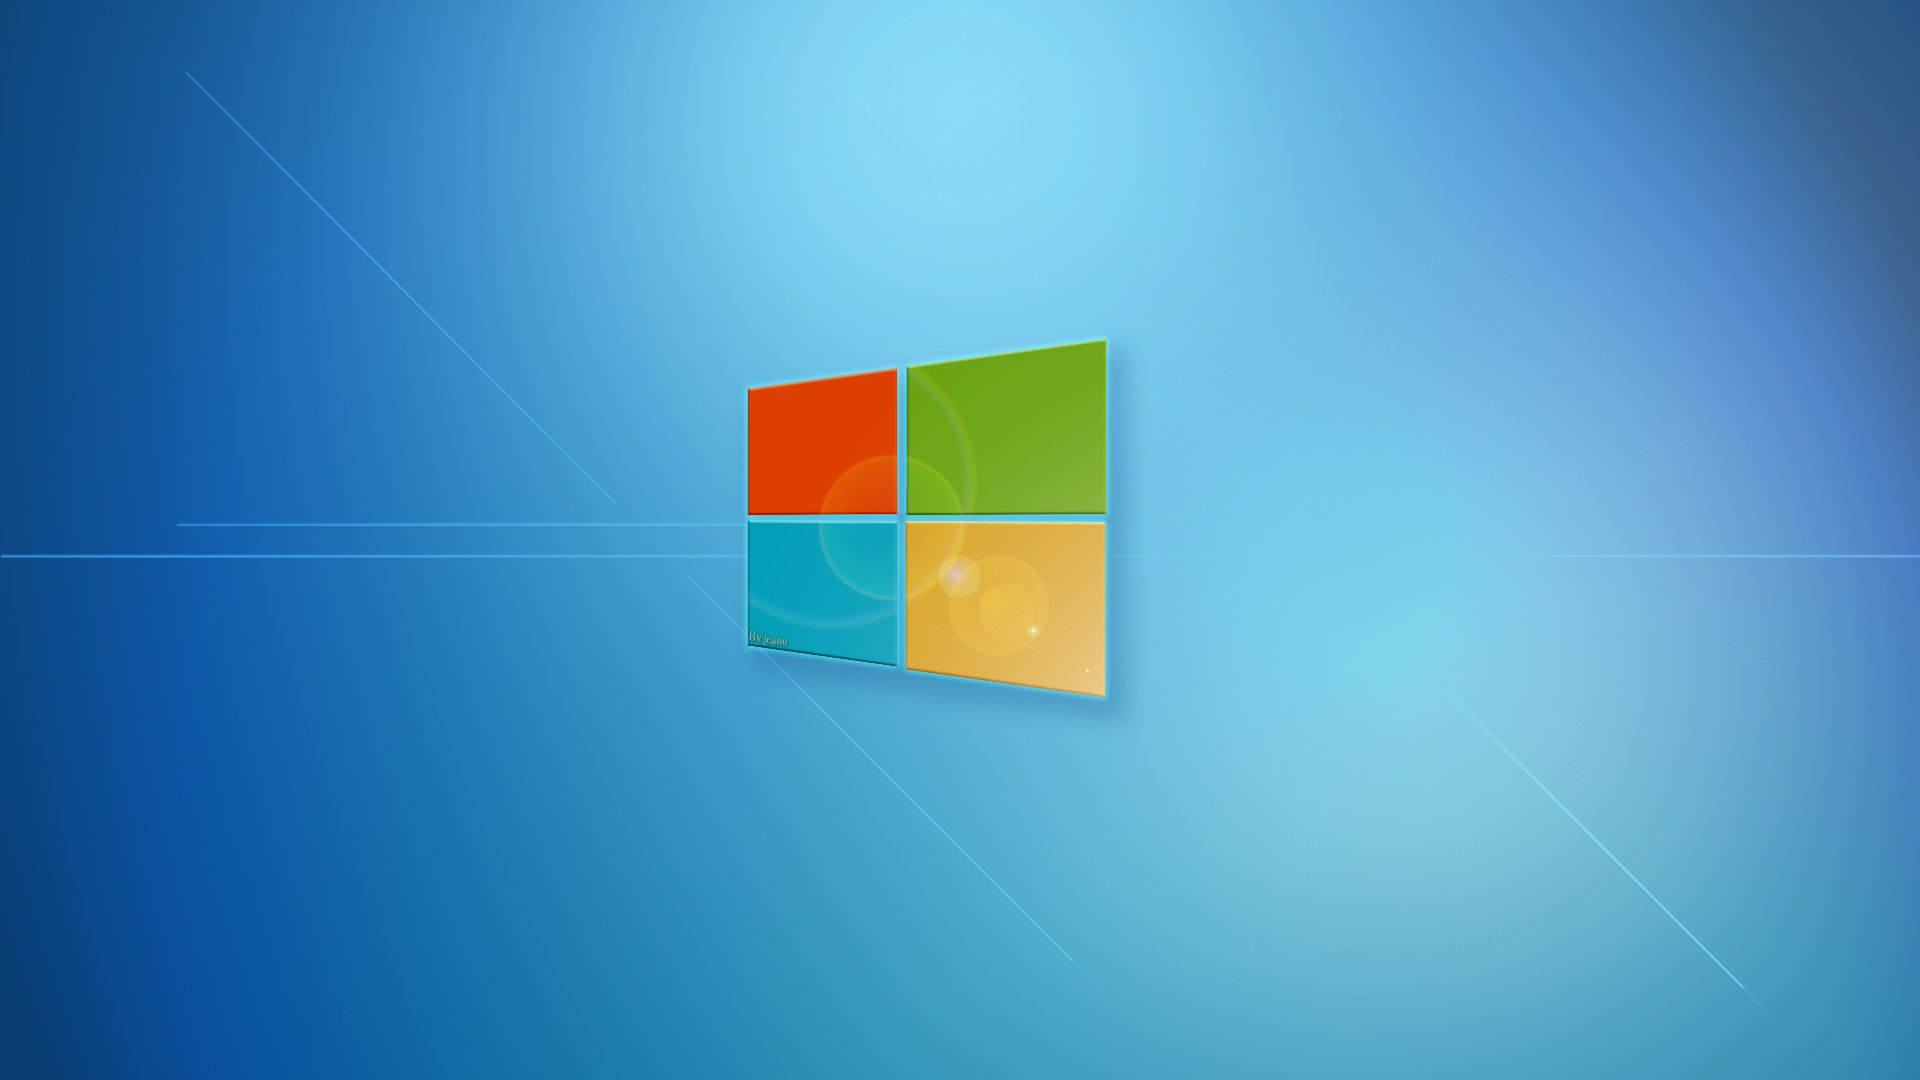 Download these 44 HD Windows 8 Wallpaper Images 1920x1080